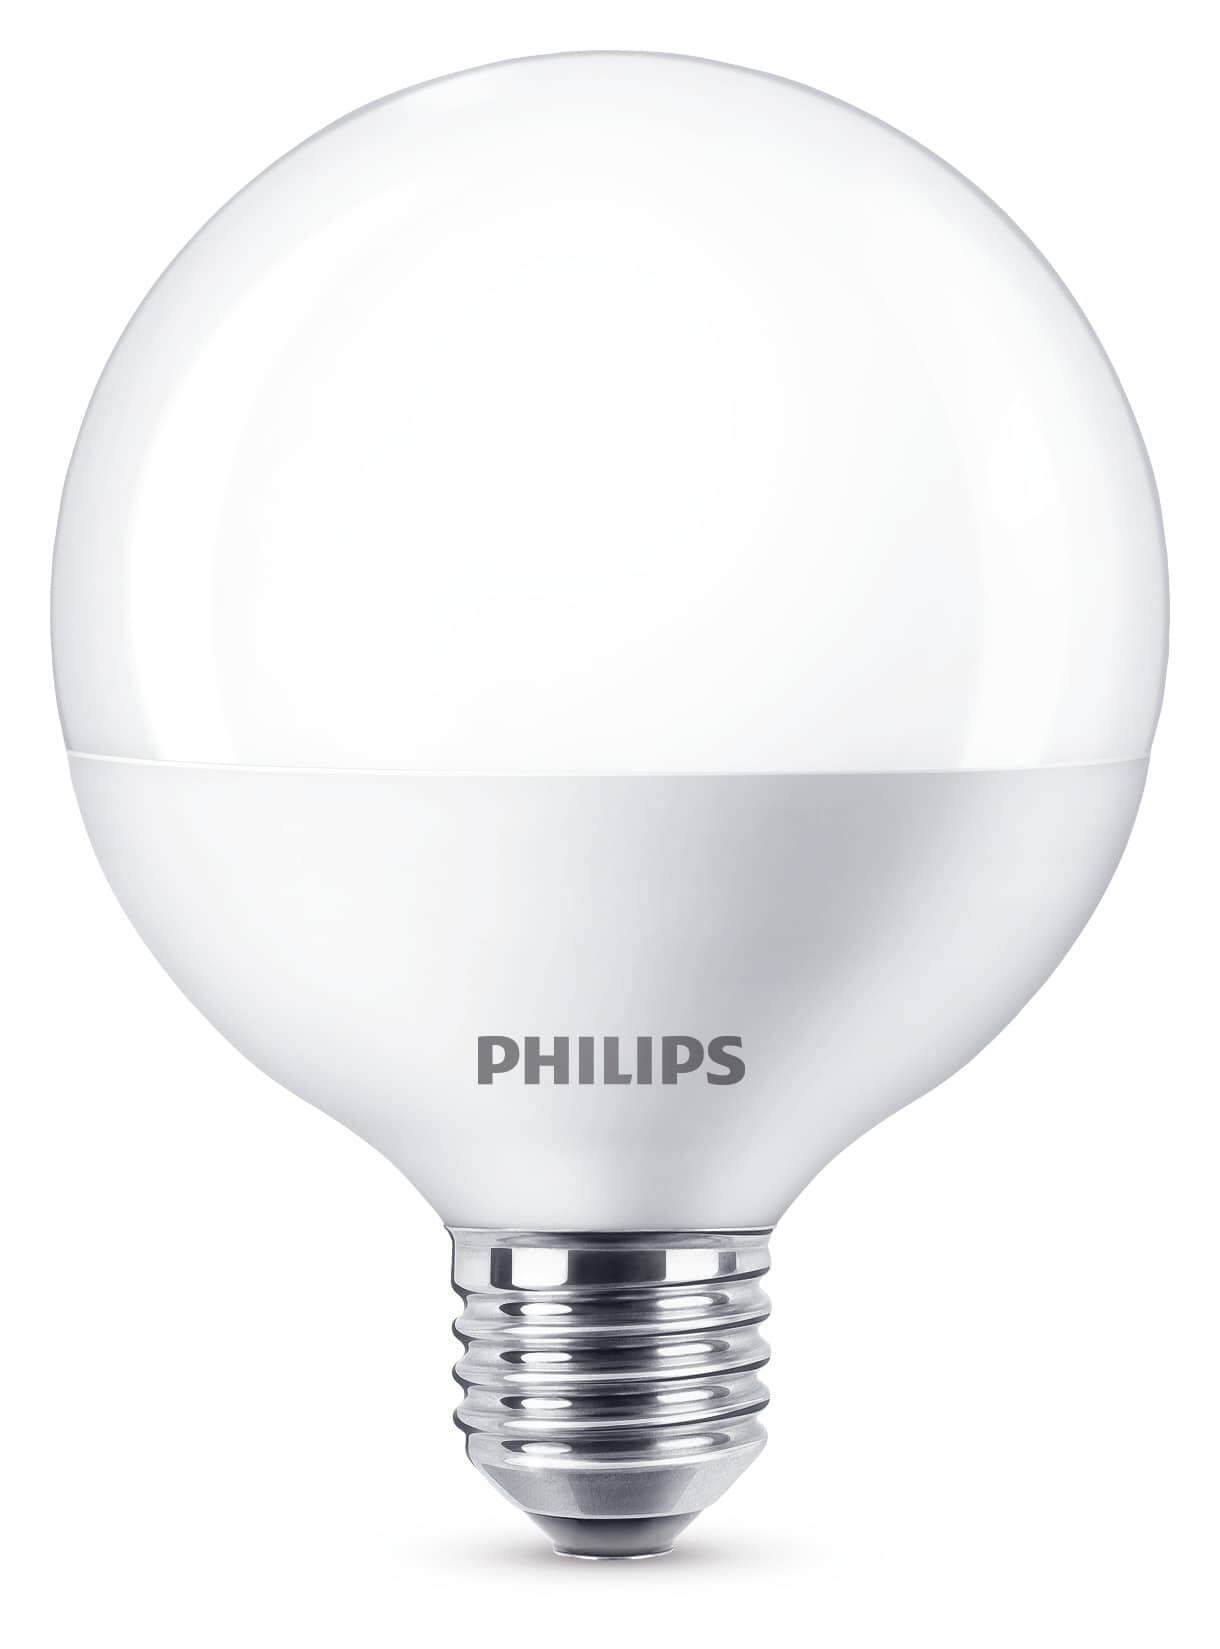 philips e27 led globe filament 16 5w 1521lm warmweiss hier bestellen. Black Bedroom Furniture Sets. Home Design Ideas